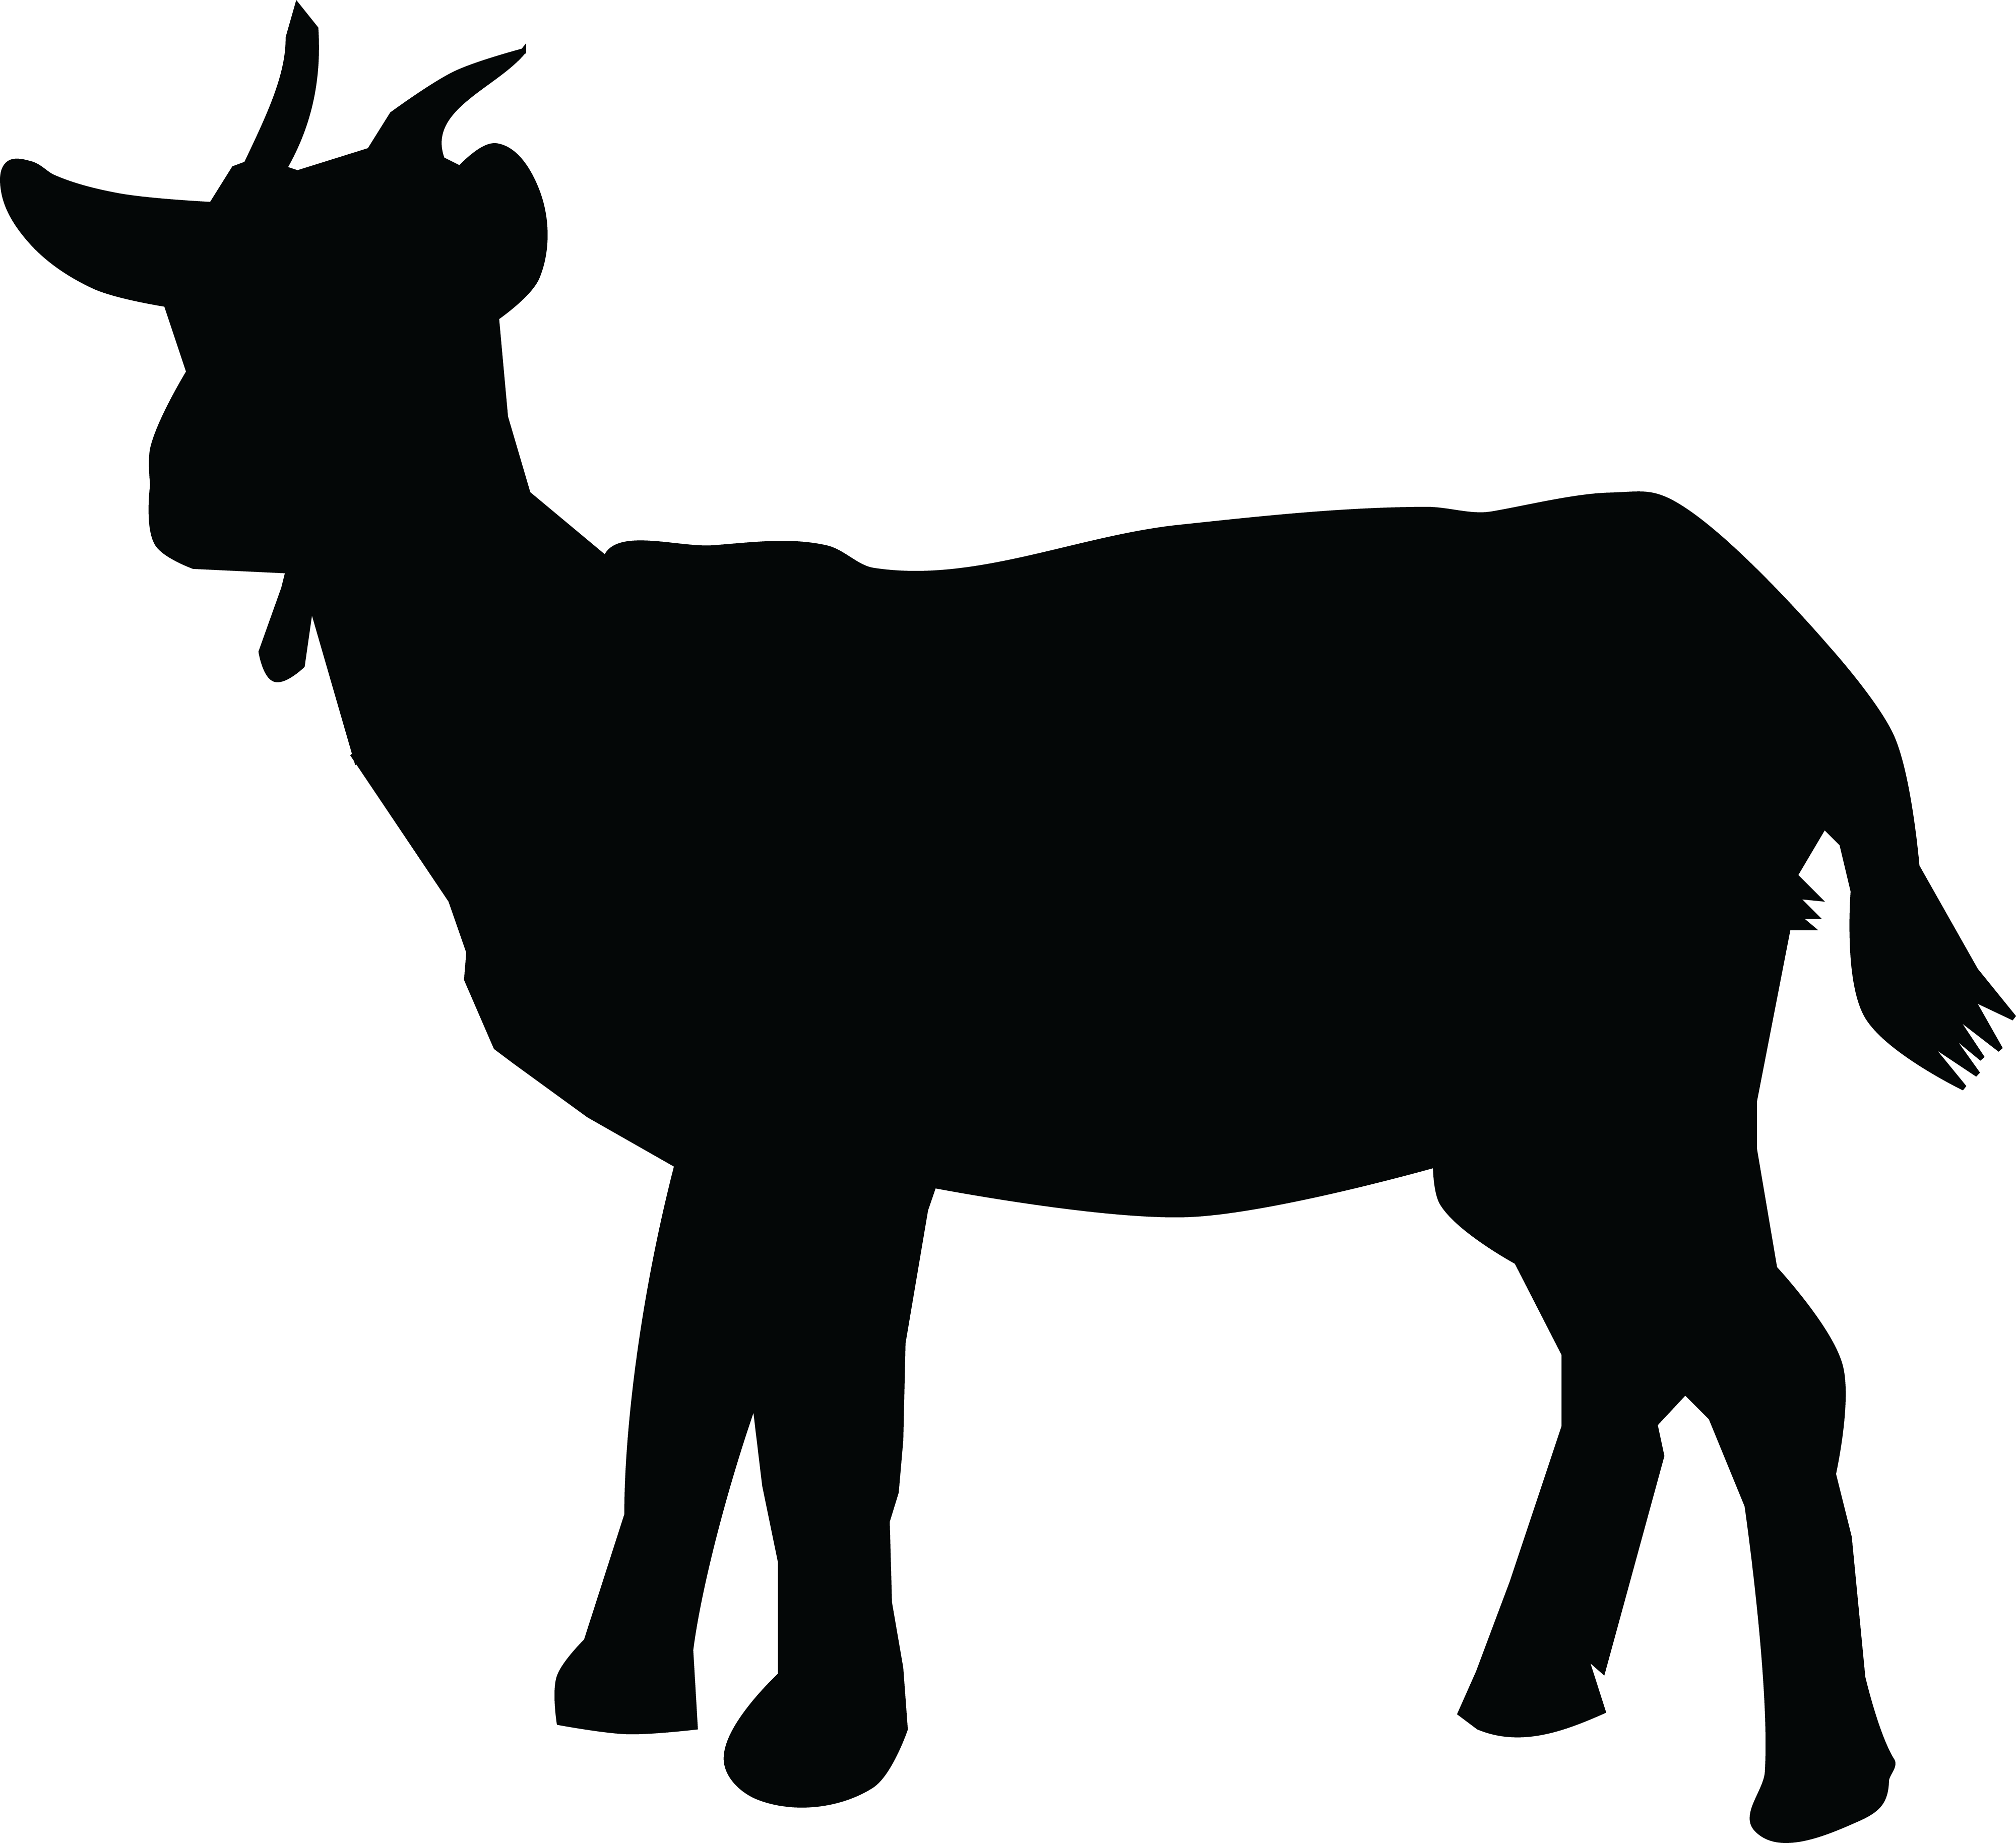 Dairy goat at getdrawings. Mailbox clipart silhouette